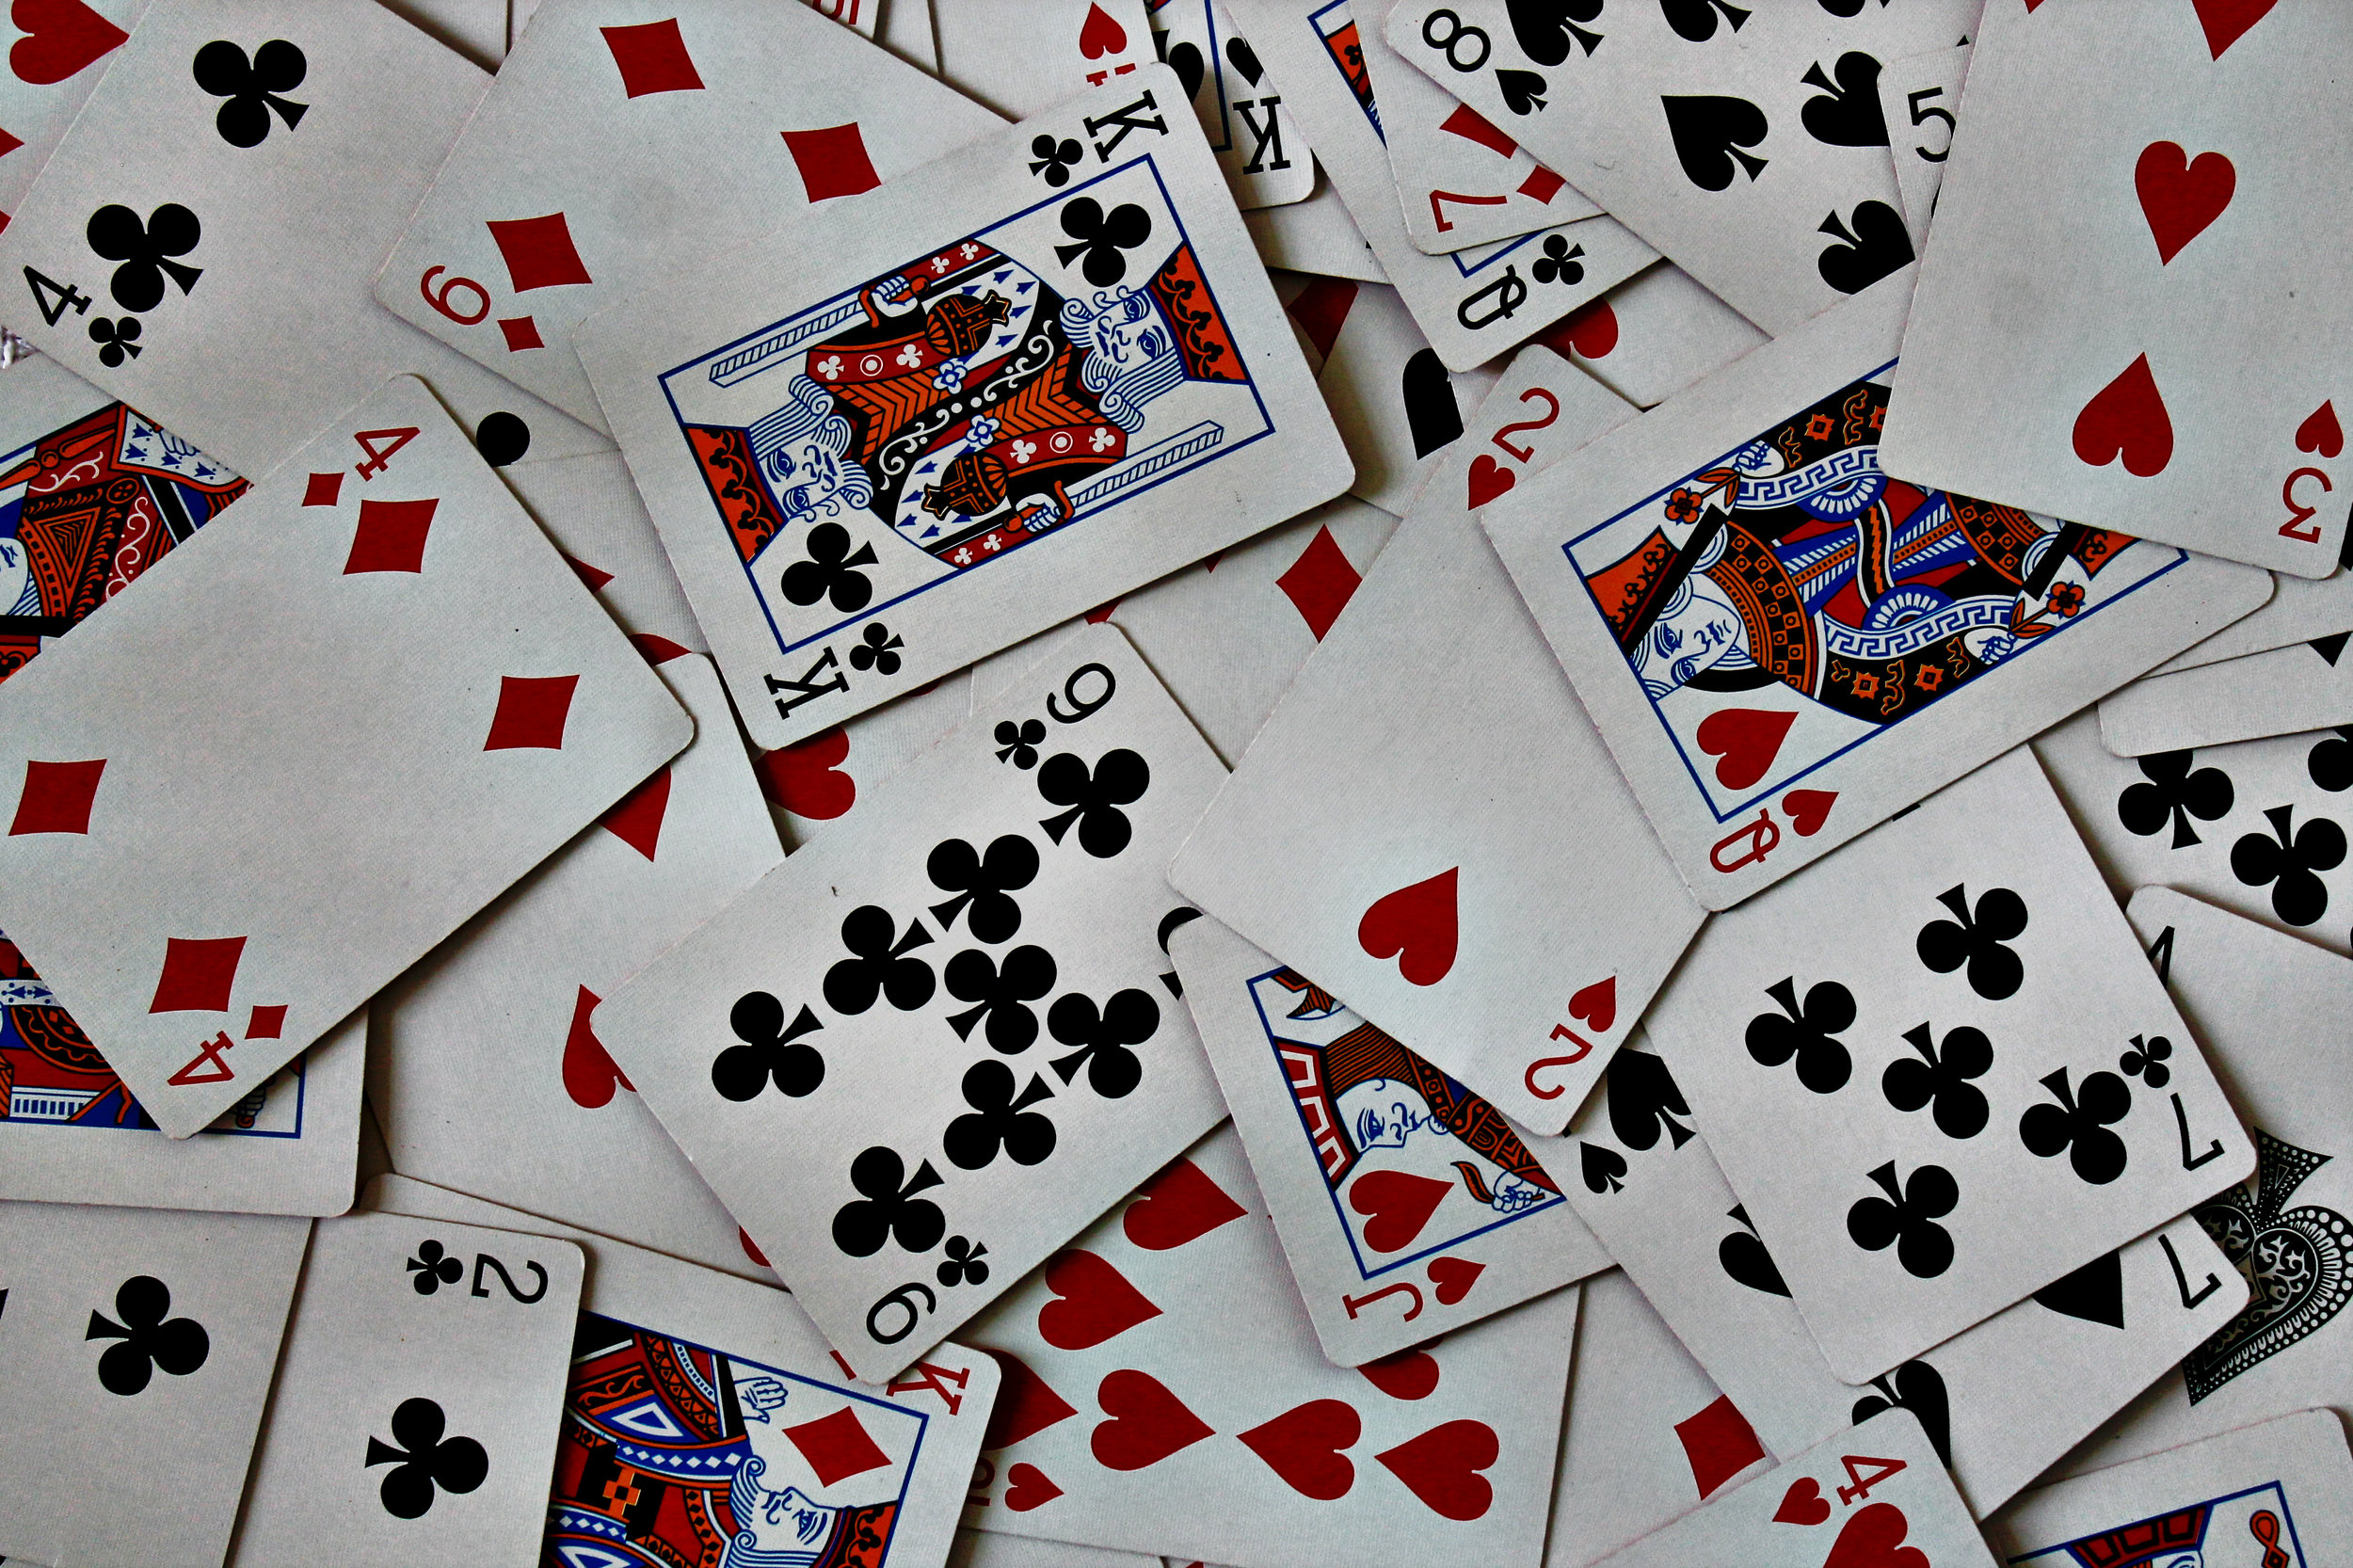 My Practice - I've been practicing this form of divination for over 30 years. You will find that a deck of 52 playing cards can offer so much information. I provide spiritual guidance and can also connect with loved ones past.